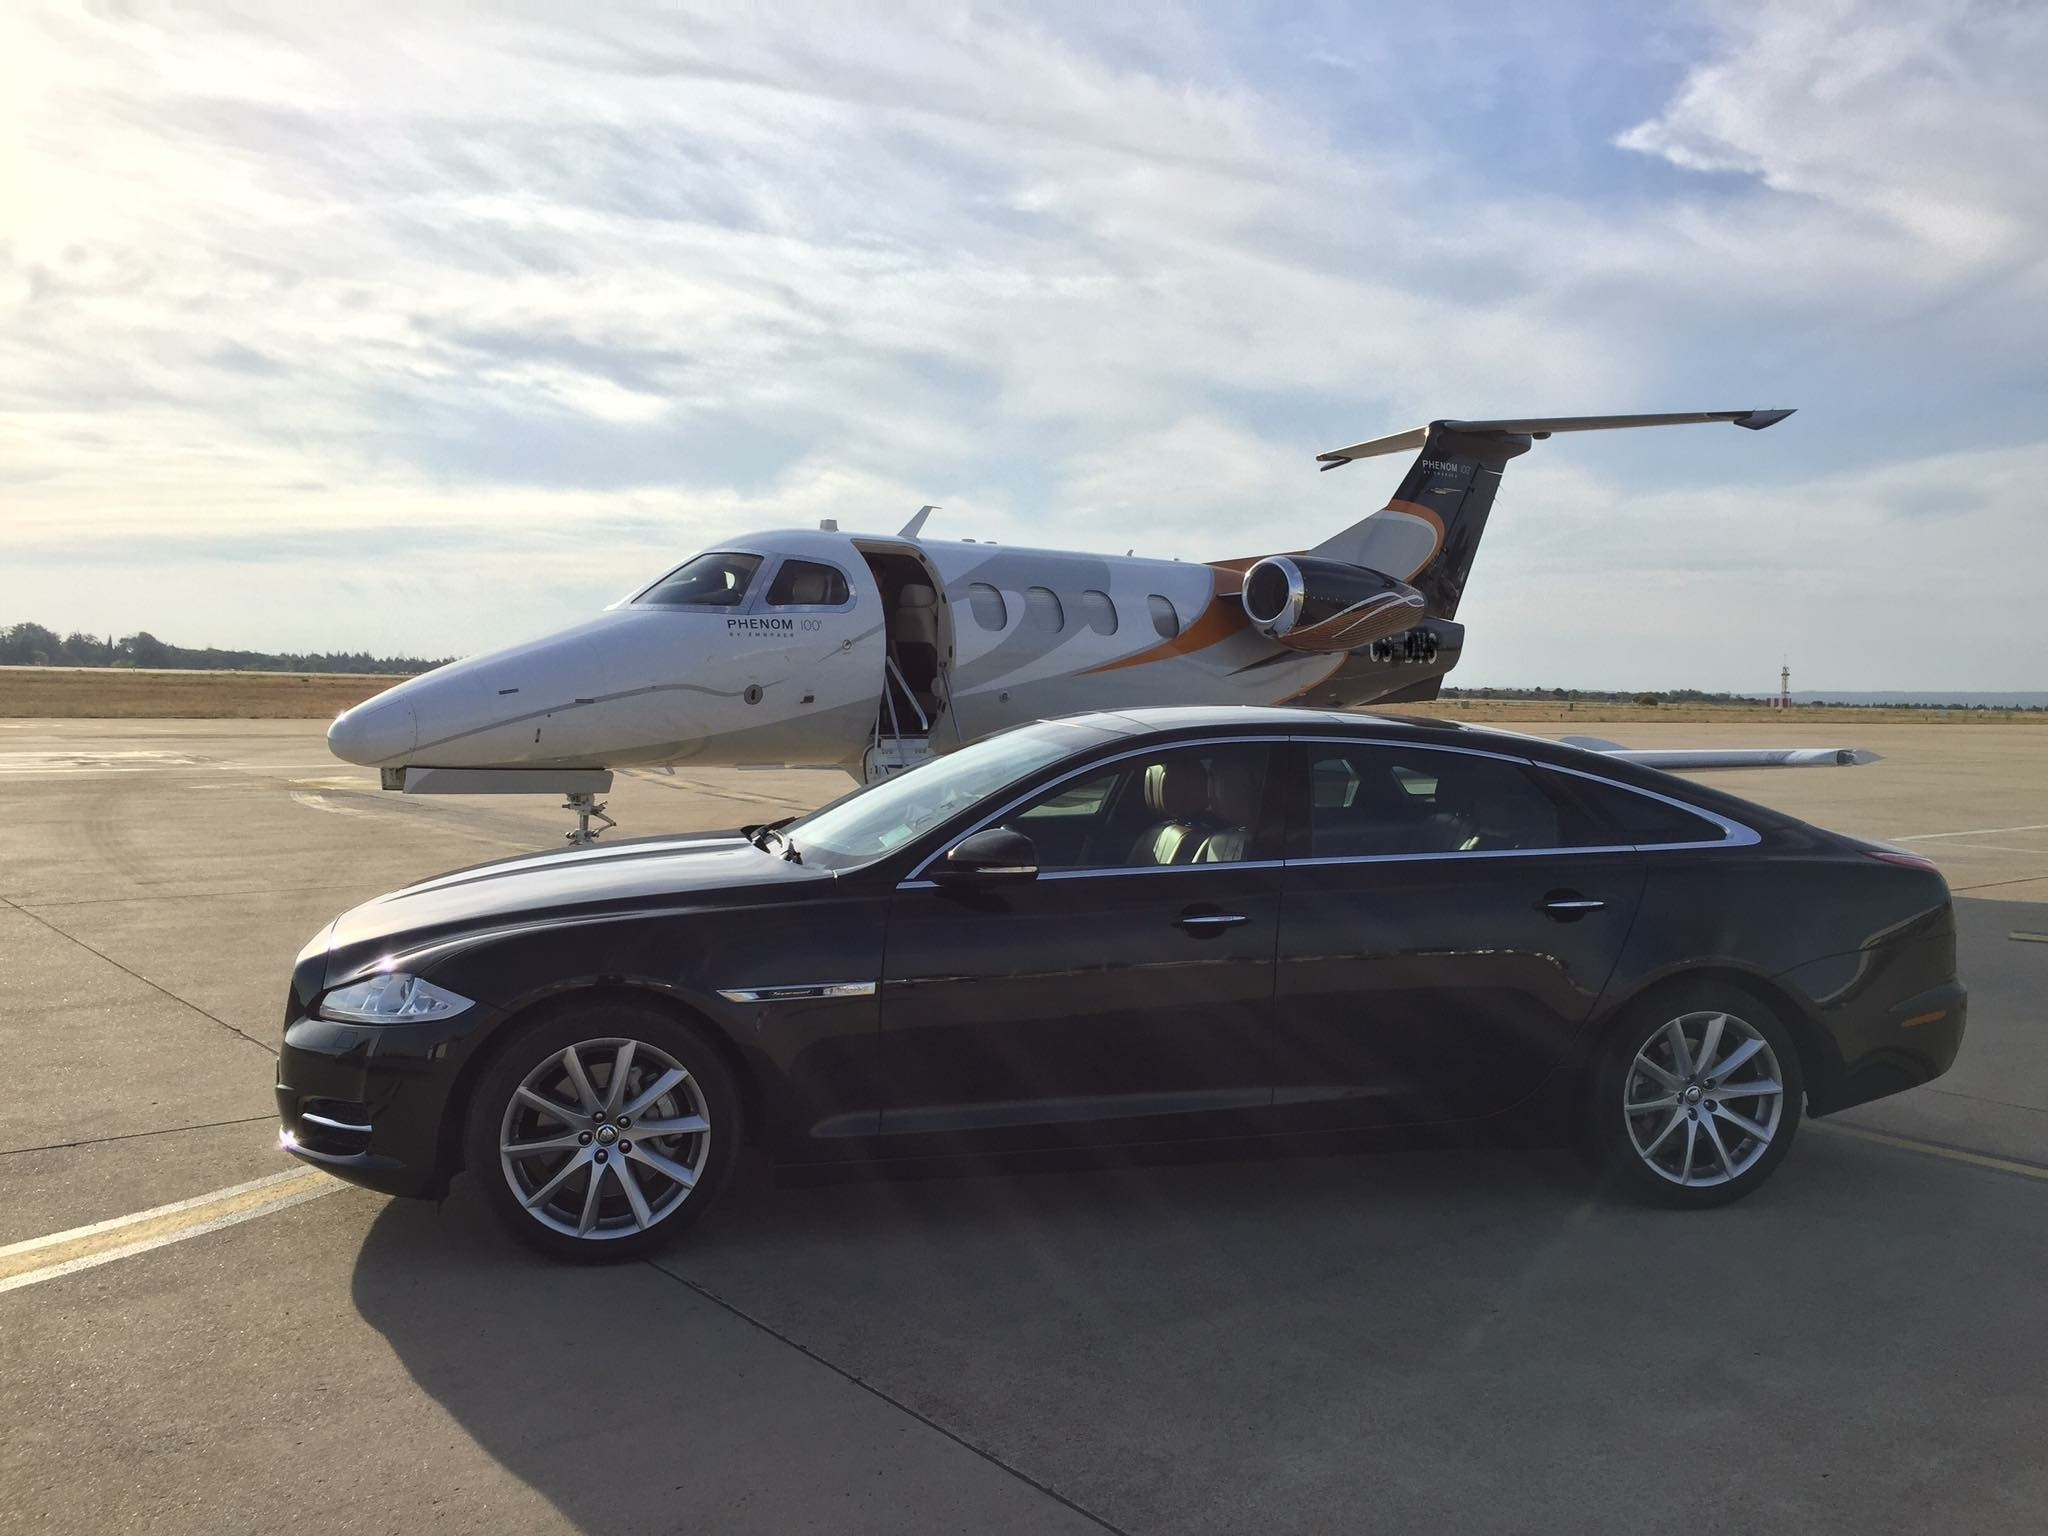 Car hire with chauffeur at the airport tarmac